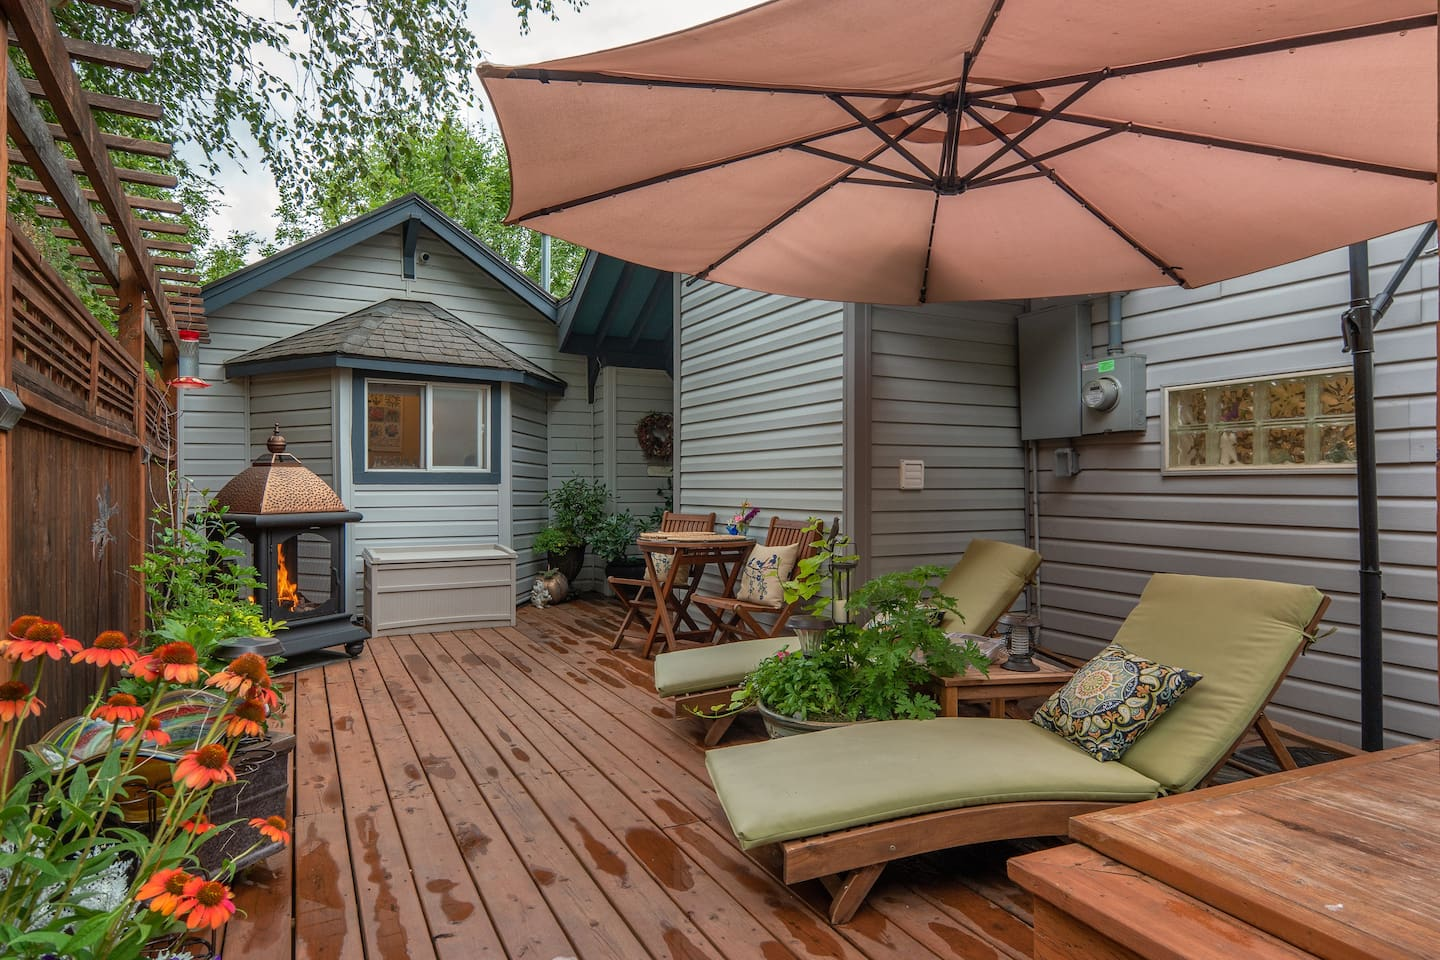 Welcome Home to Cottage House!  Your private deck provides 2 lounge chairs, a table for two, fireplace and umbrella. Your entry door is on this deck. The window near the fireplace is your bathroom, your bedroom is connected to the bathroom. Book it!